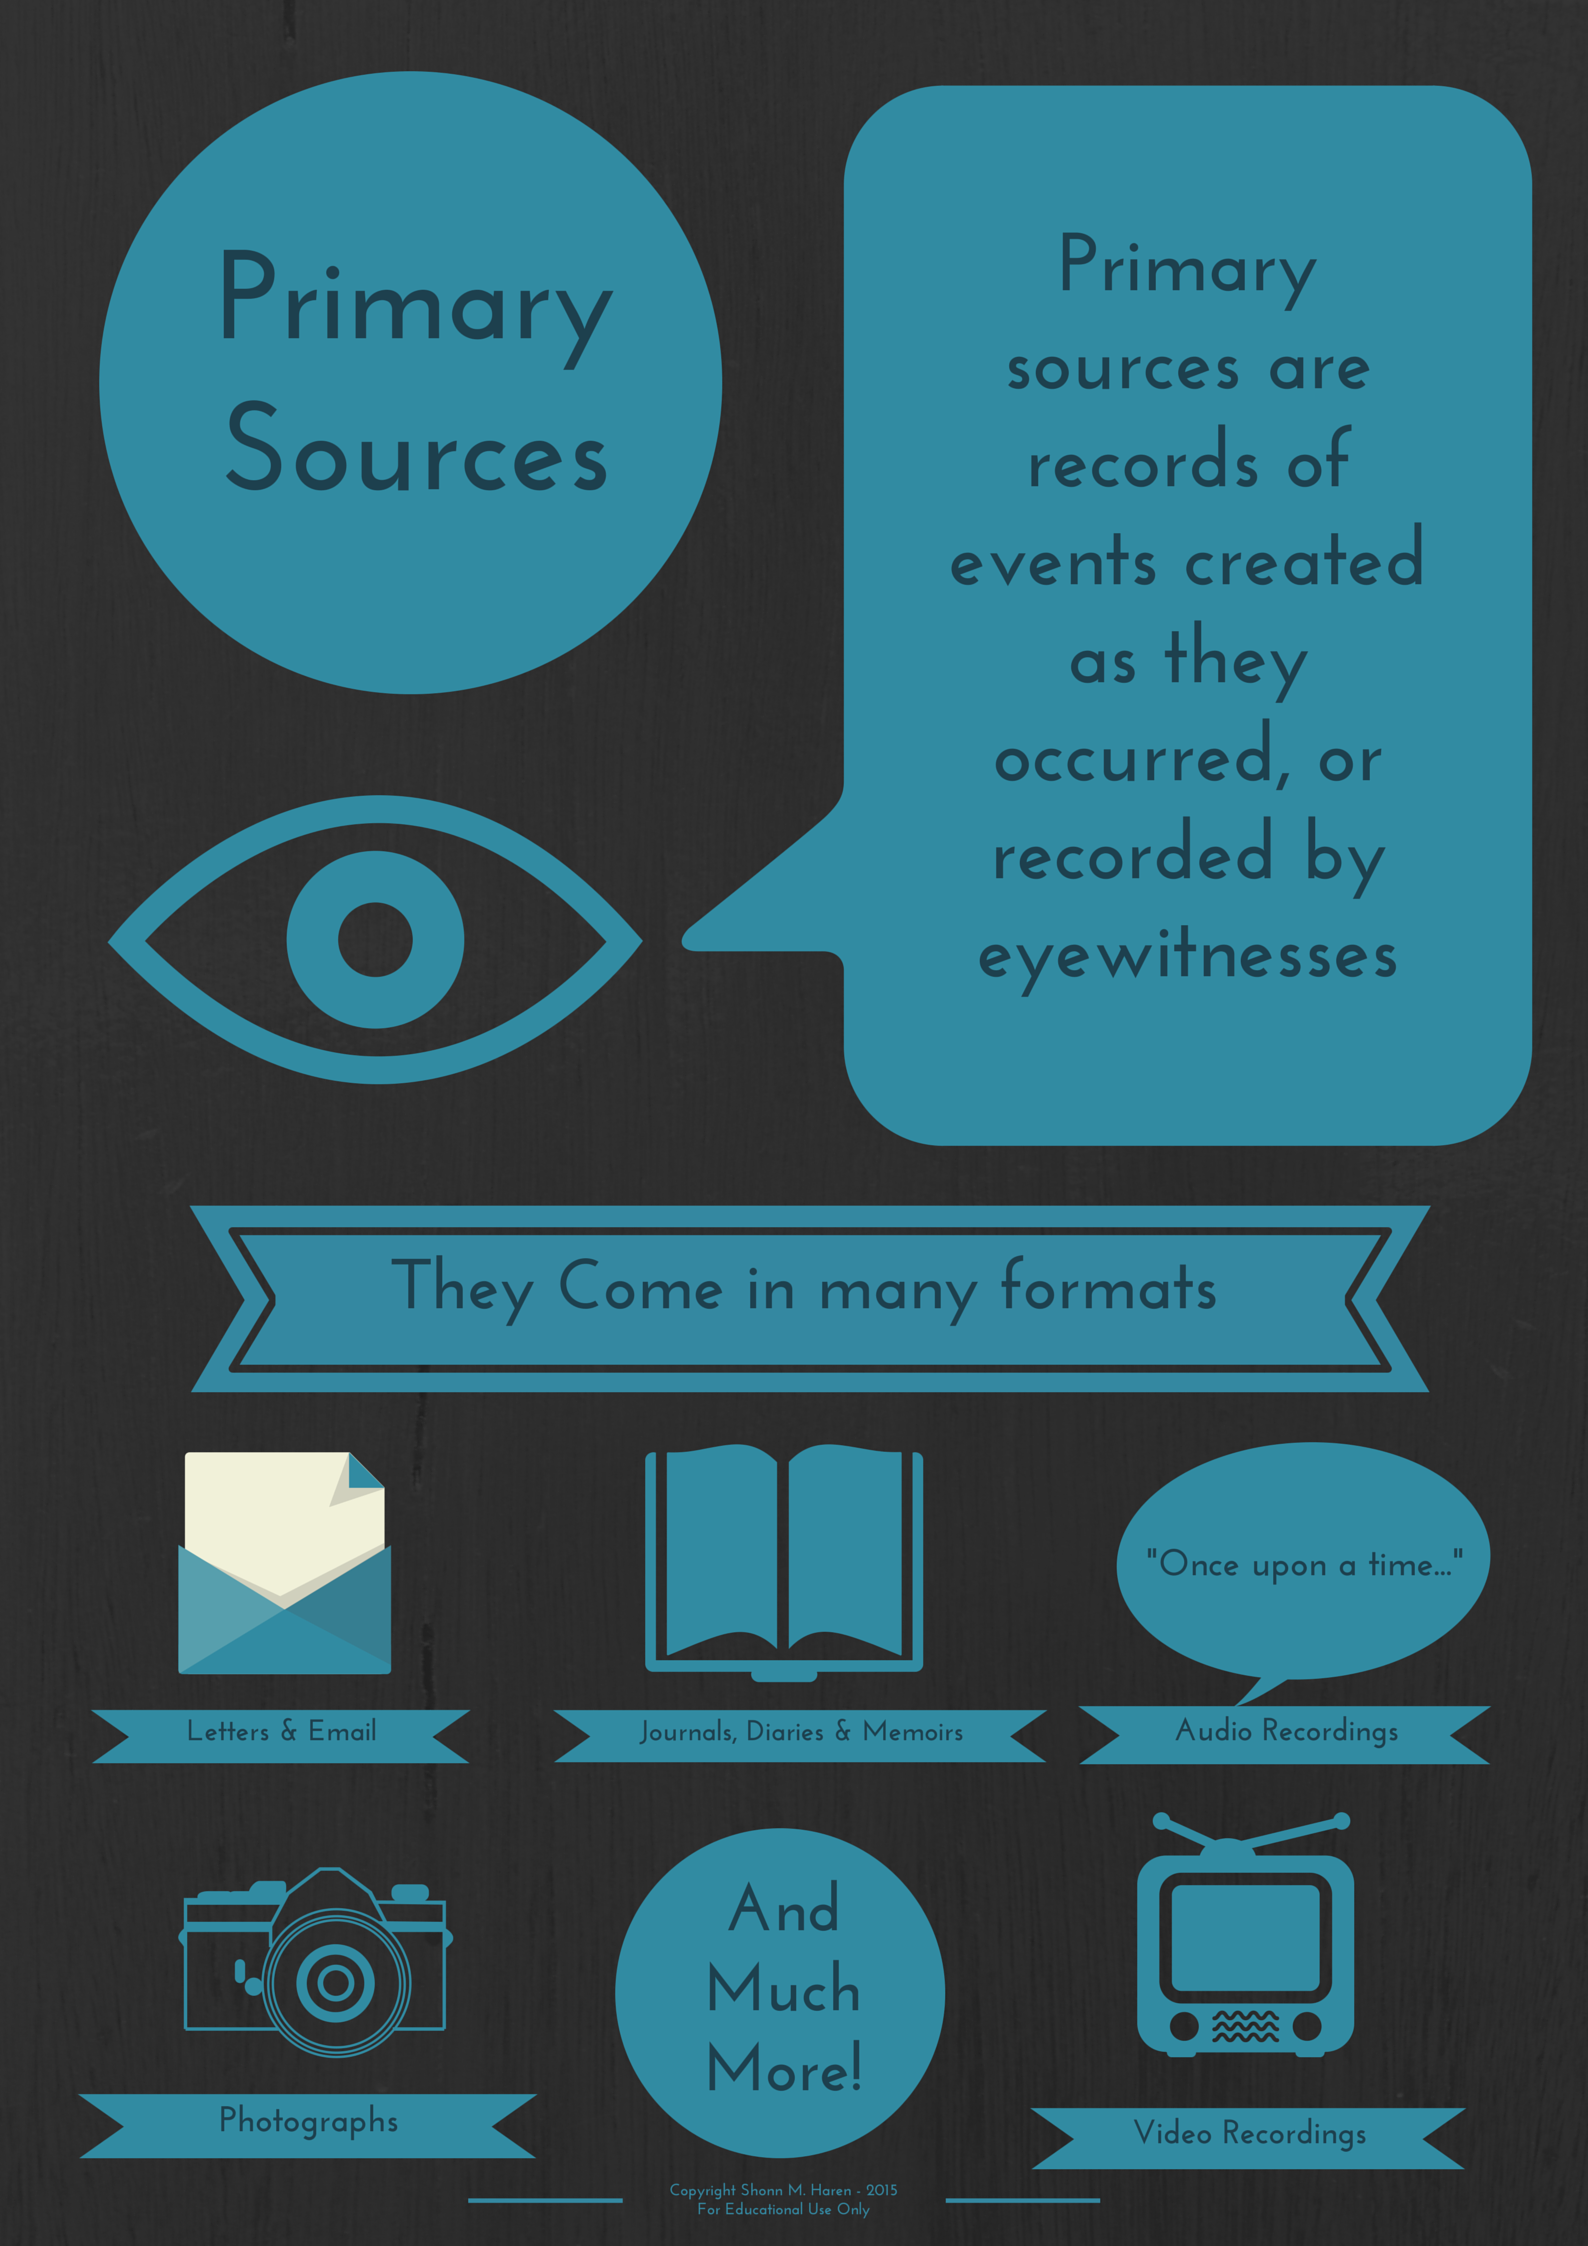 Primary sources are records of events created as they occurred, or recorded by eye witnesses. They come in many formats, including letters and email; journals, diaries, and memoirs; audio recordings; photographs; audio recordings; and much more.